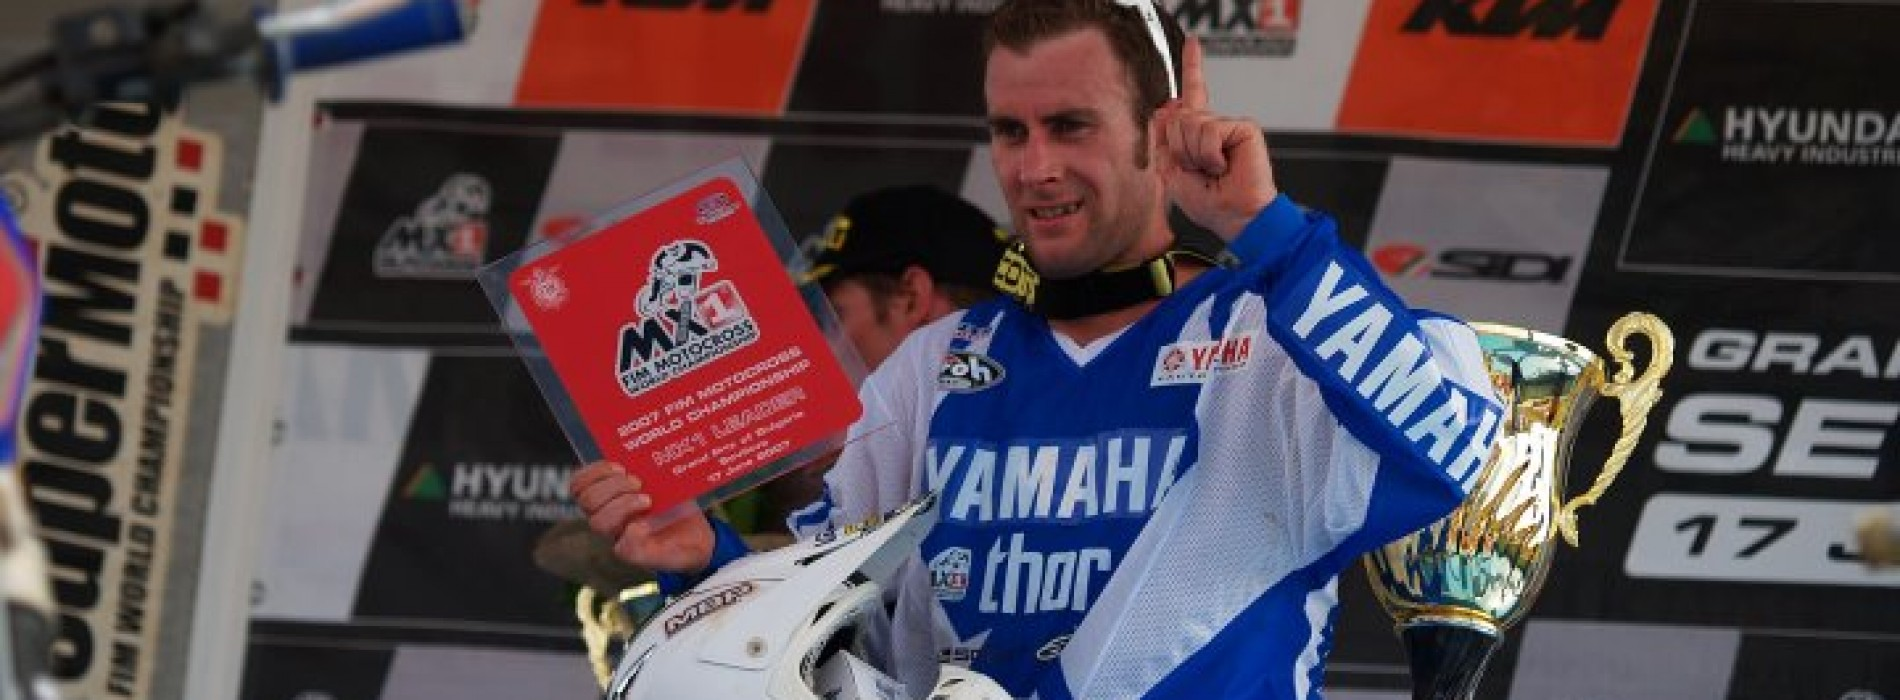 'The Lizzard' NZ's Josh Coppins re-cap of MX career posted 2013